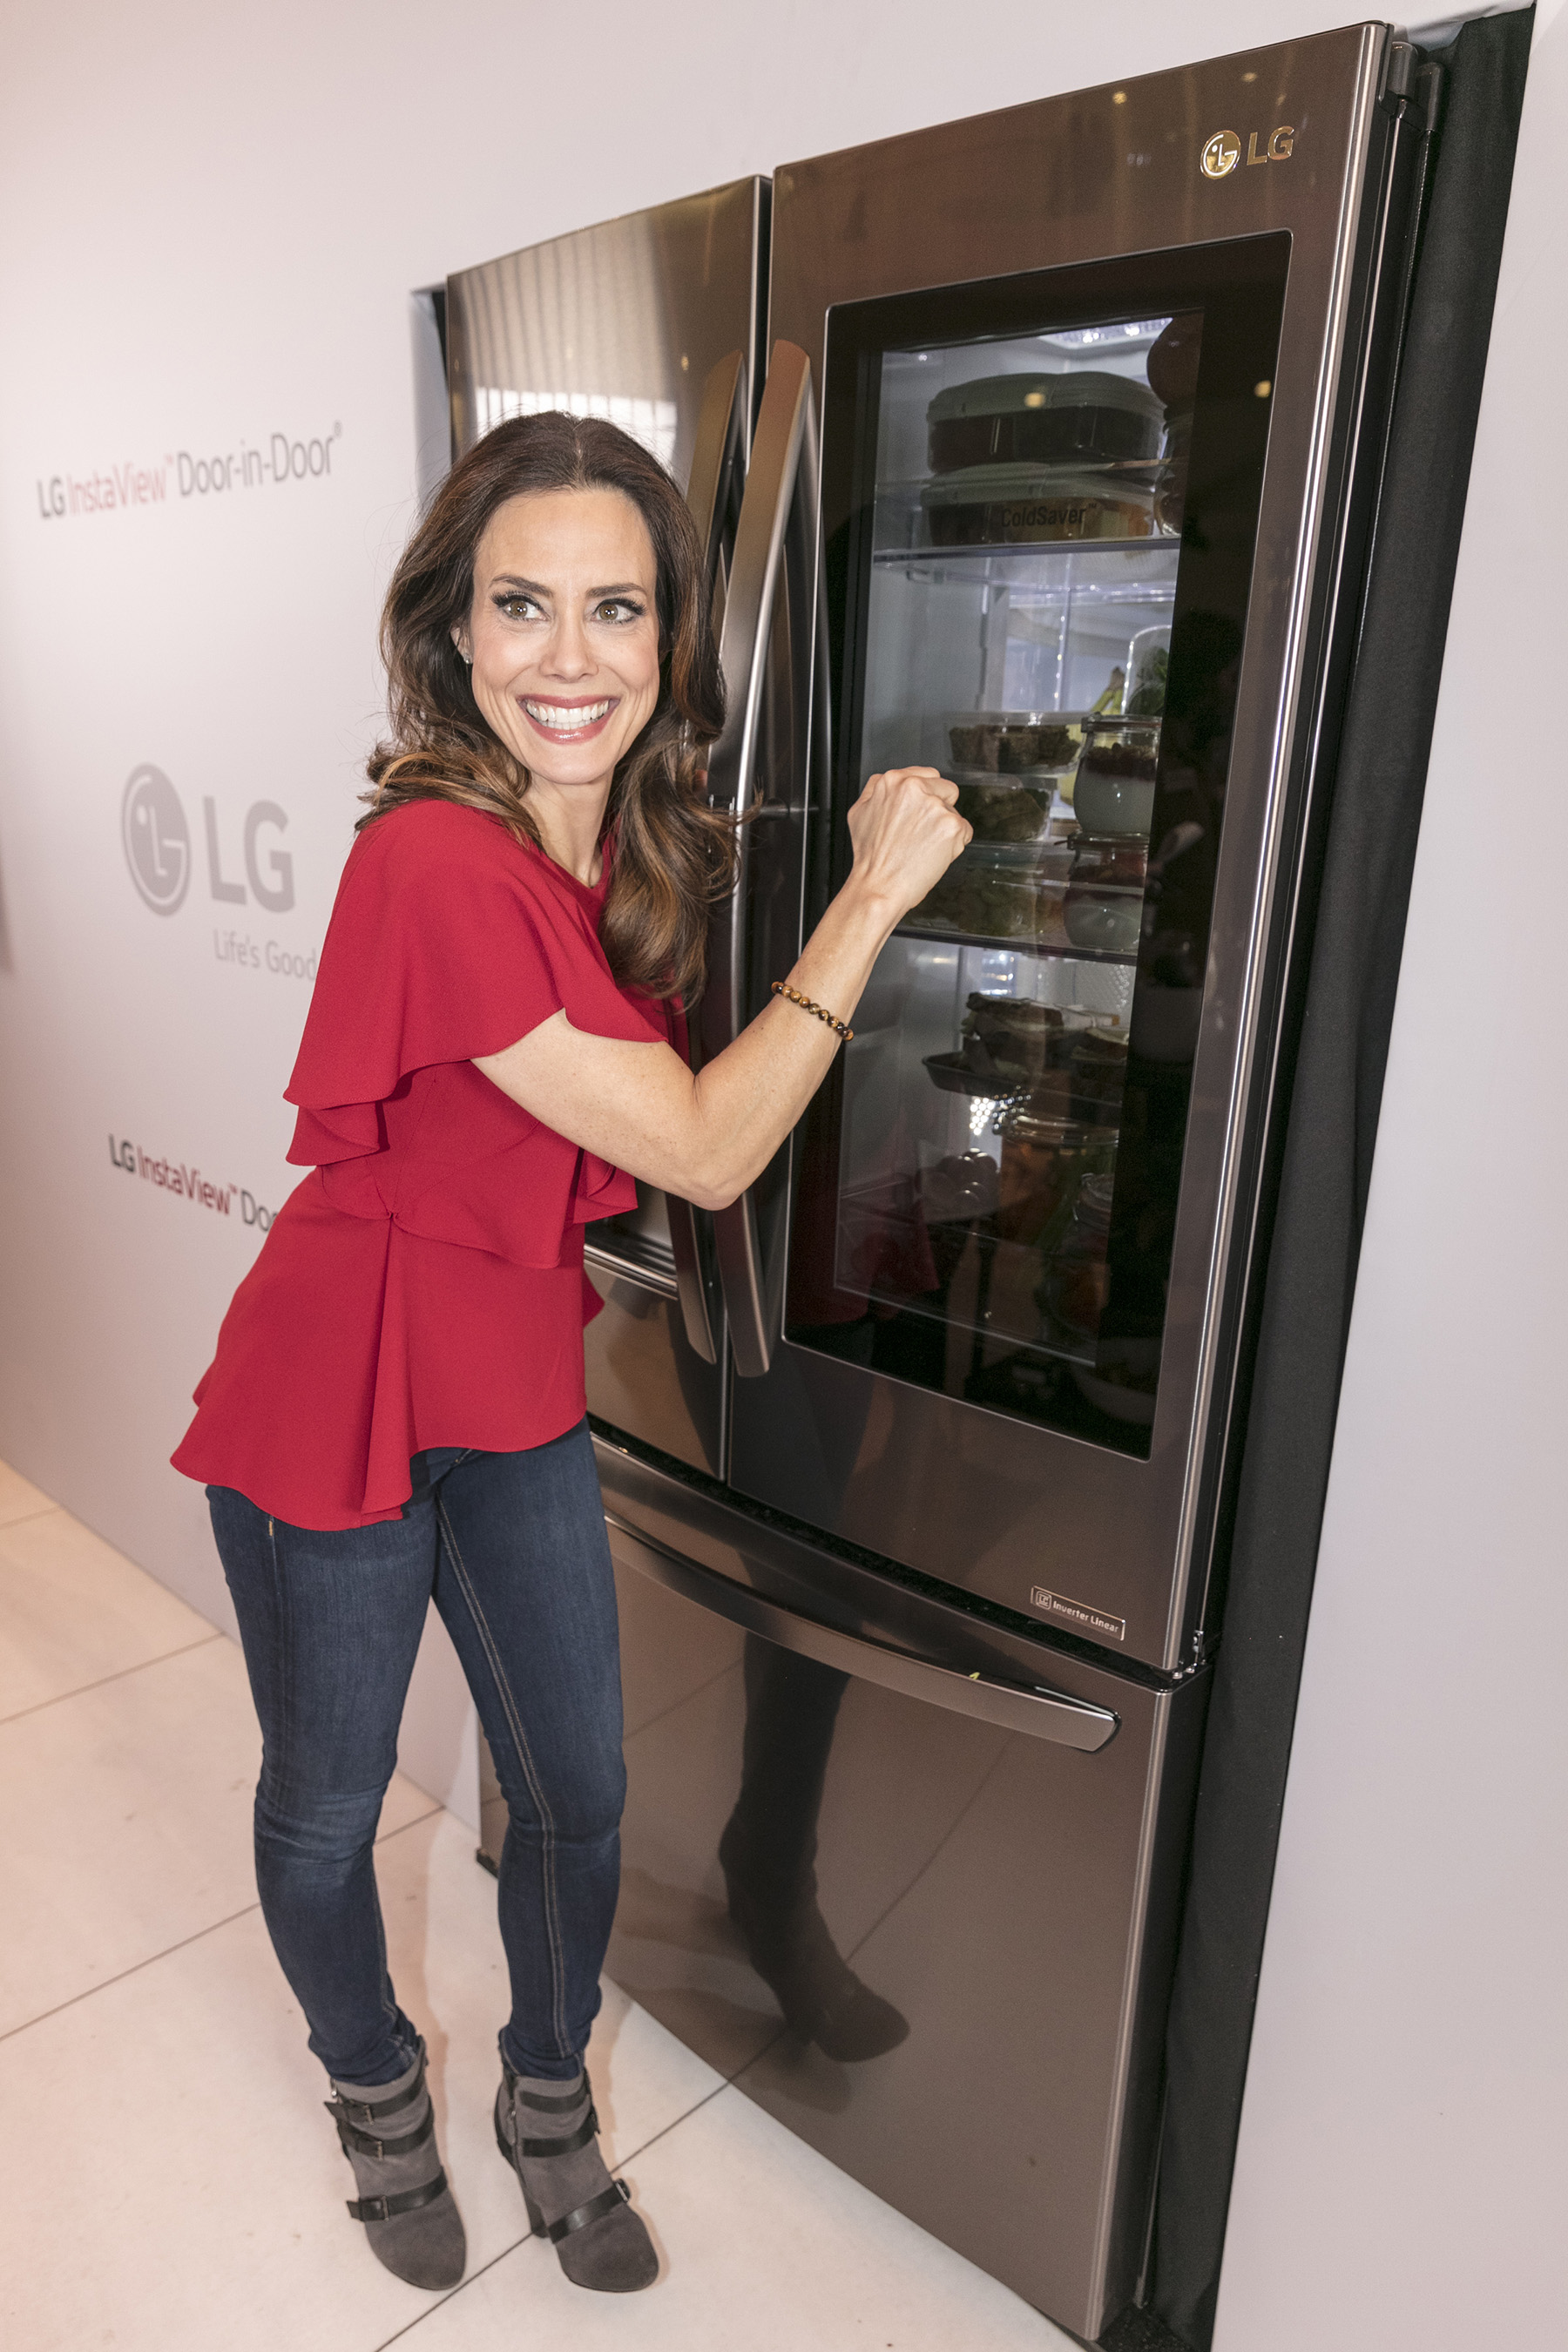 "At an LG InstaView Refrigerator event on March 7, 2017 in New York, celebrity nutritionist Keri Glassman demonstrates how knocking twice on LG's InstaView Refrigerator illuminates a sleek panel allowing users to see inside without opening the fridge door - showcasing how a well-organized fridge can help put your ""best food forward"" to encourage a healthier lifestyle."